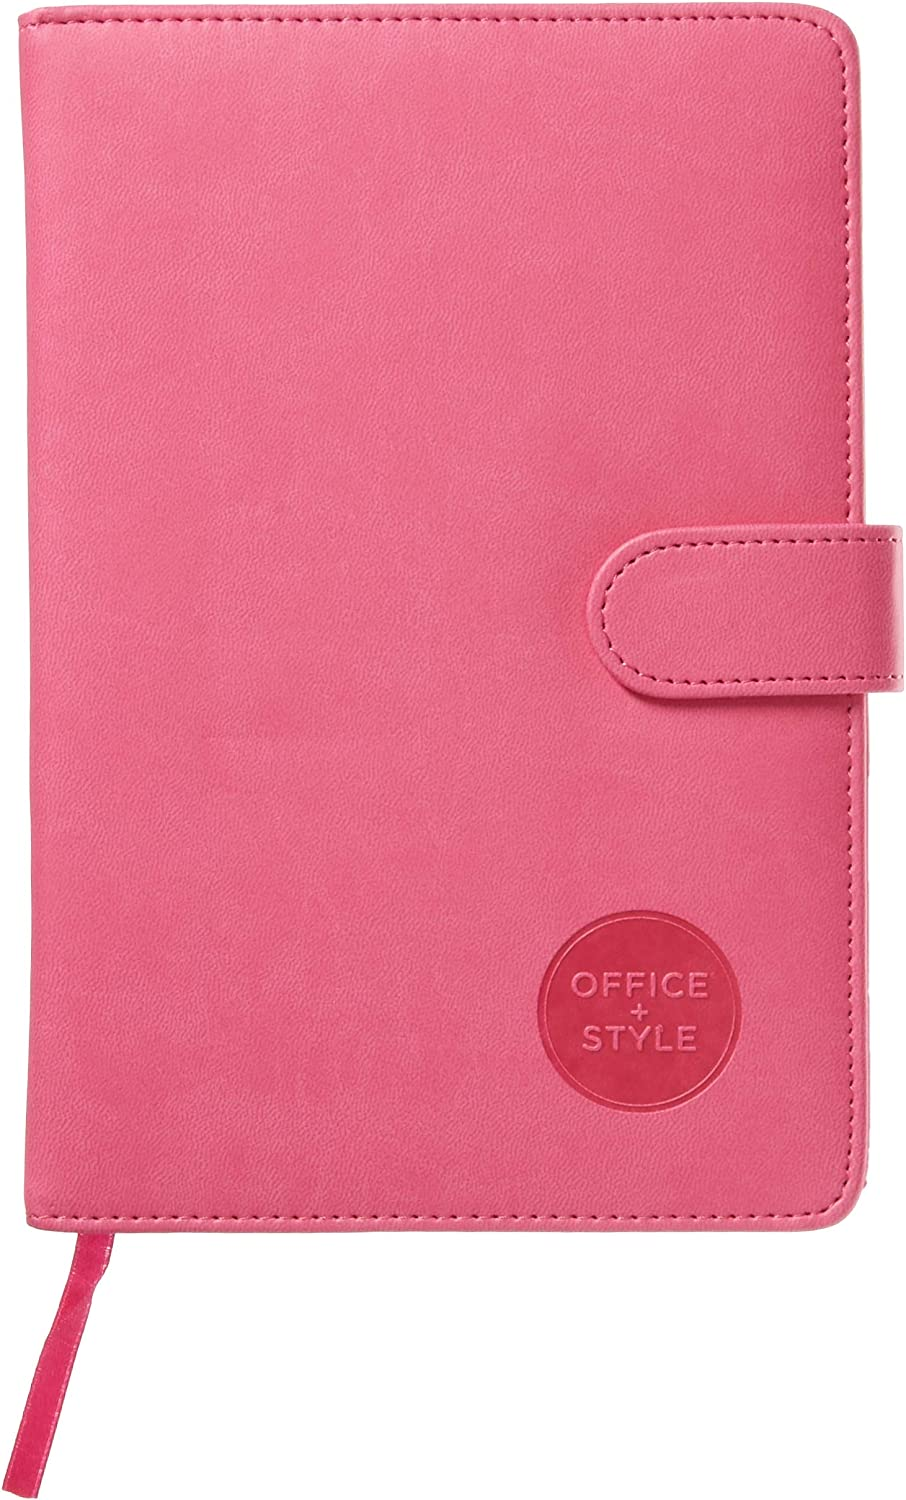 Office Style 2018 Personal Organizer Diary Planner Notebook Calendar With Magnetic Latch, 5.75